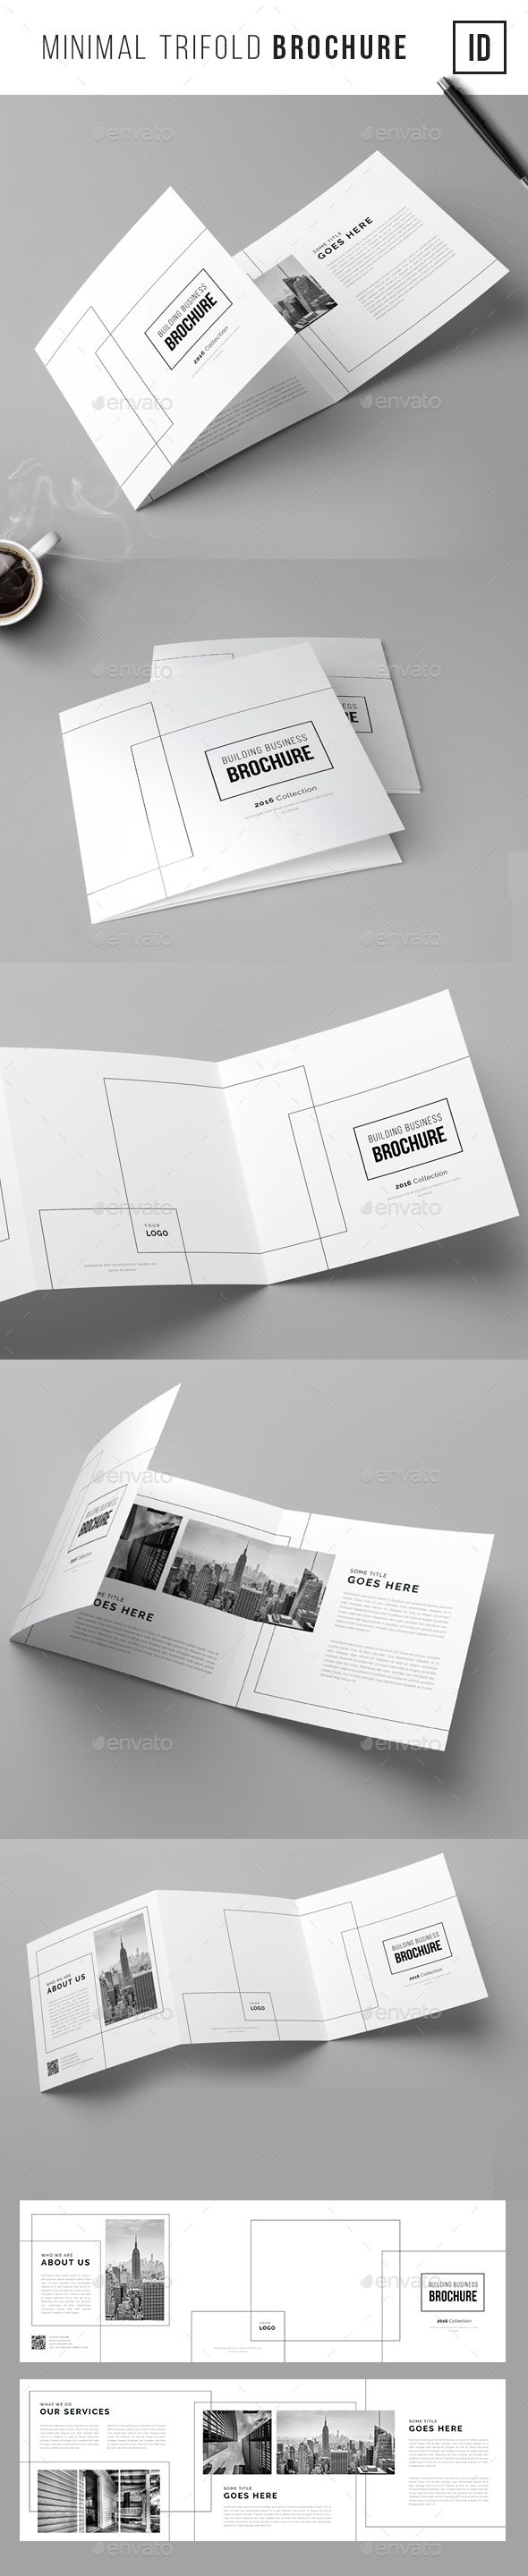 Minimal Trifold Brochure - Corporate Brochures